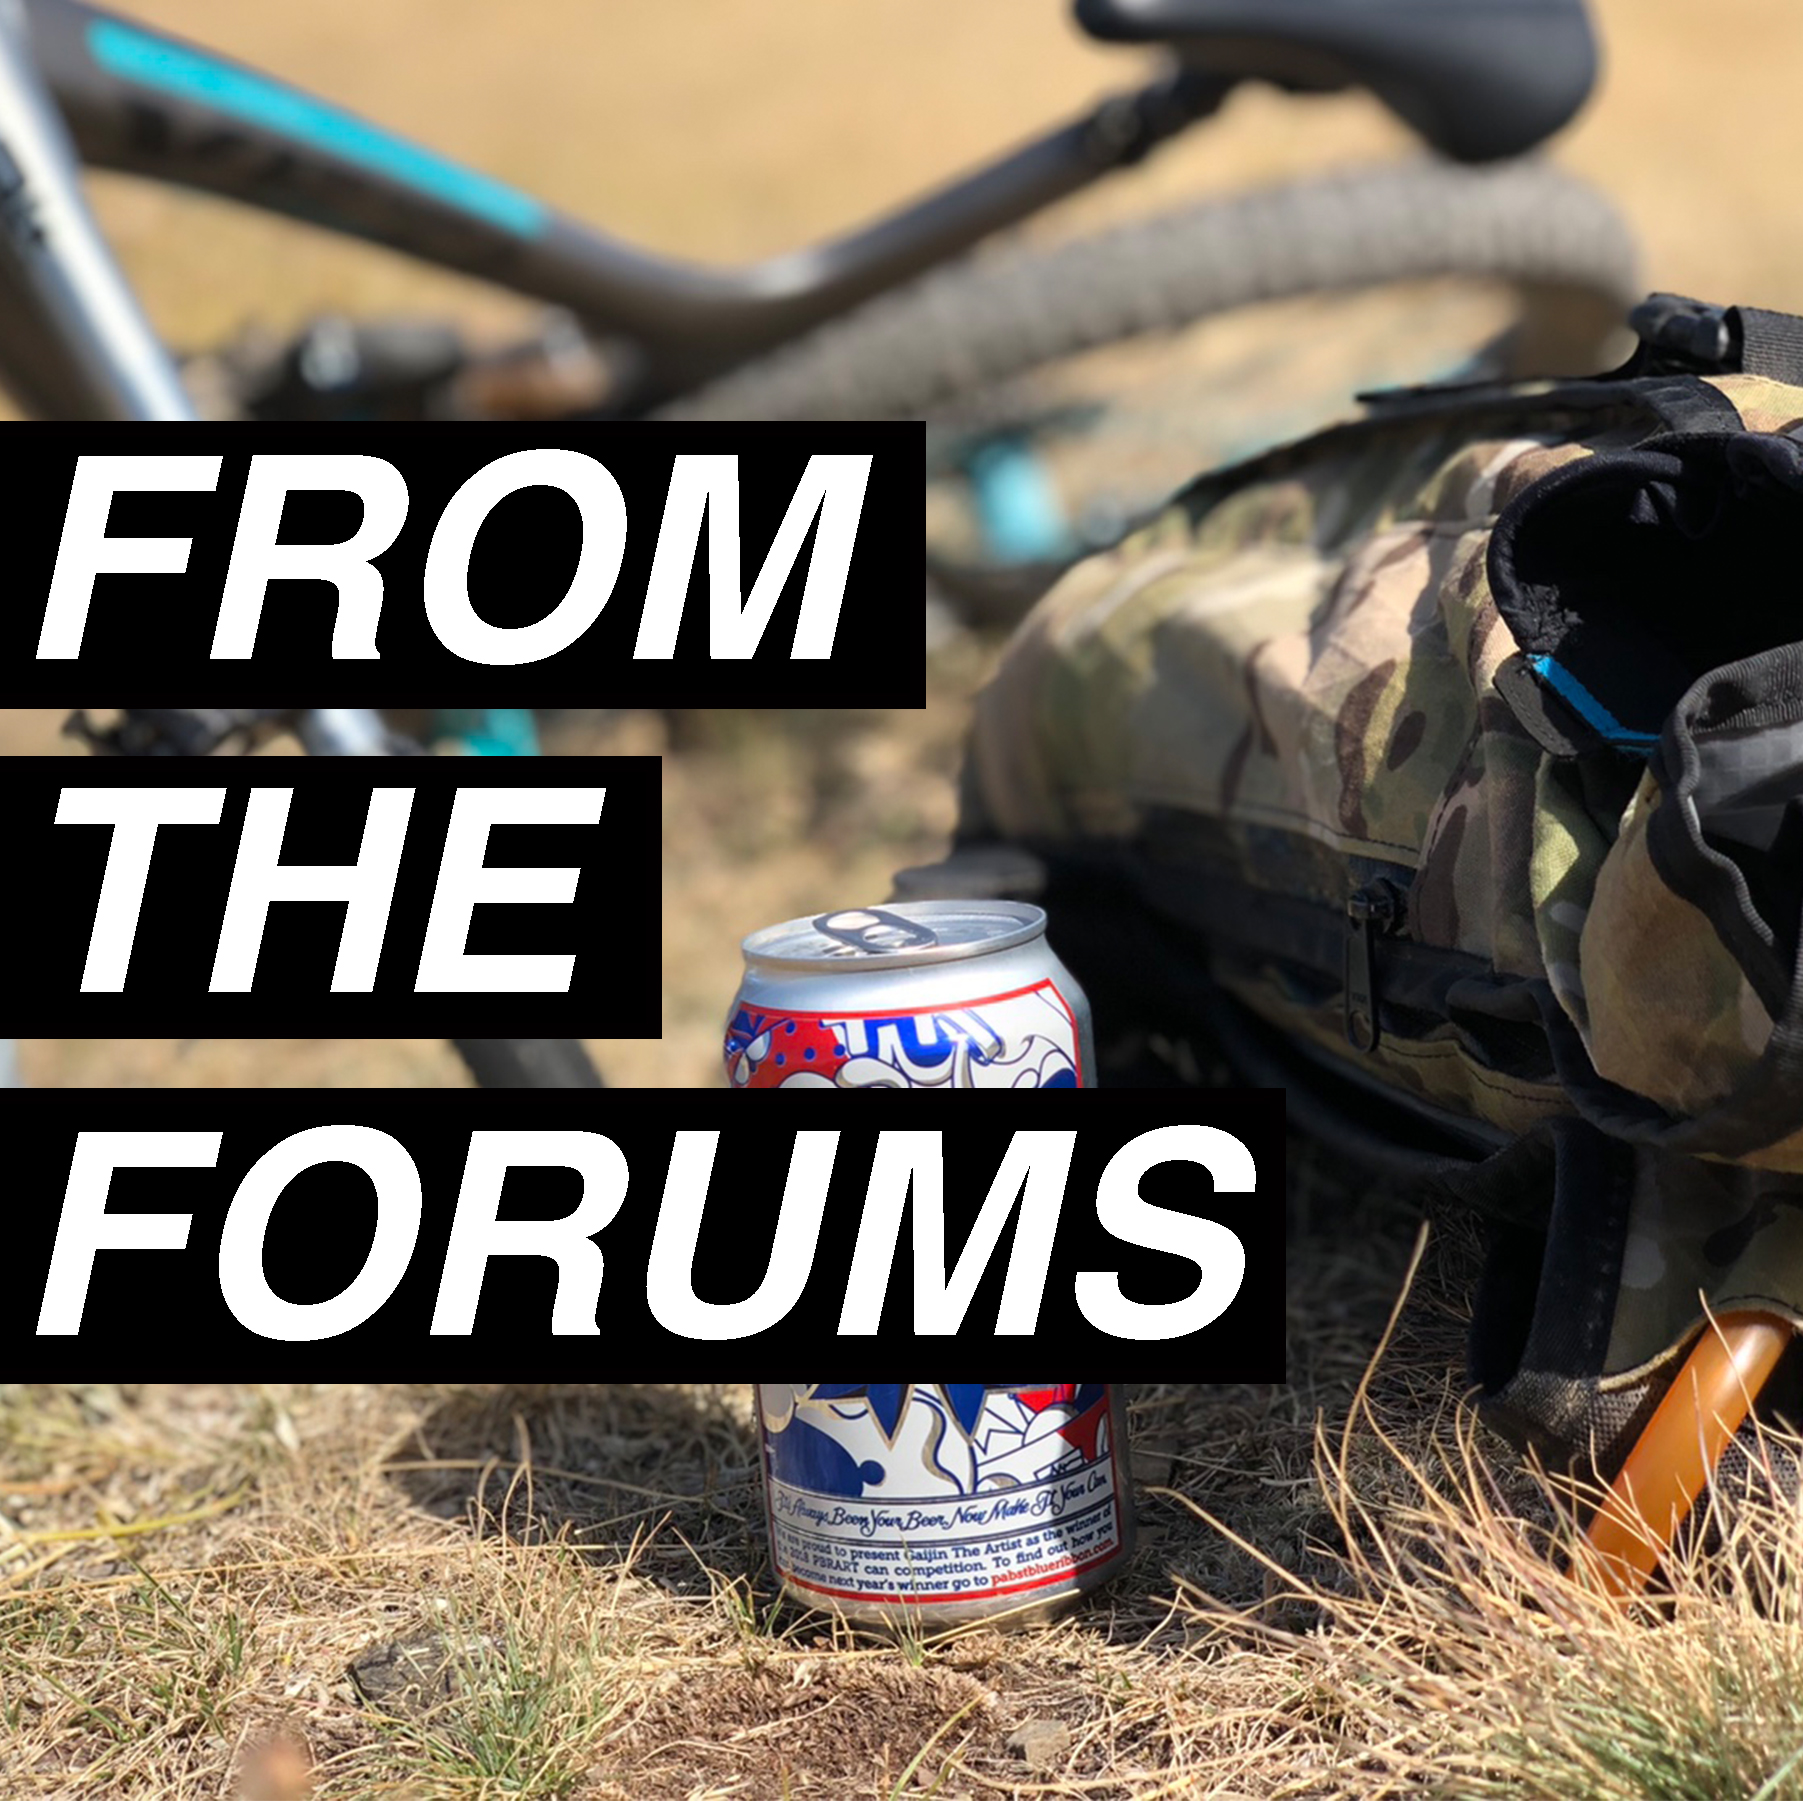 Do you enjoy a post-ride beer? Share it in our forums.